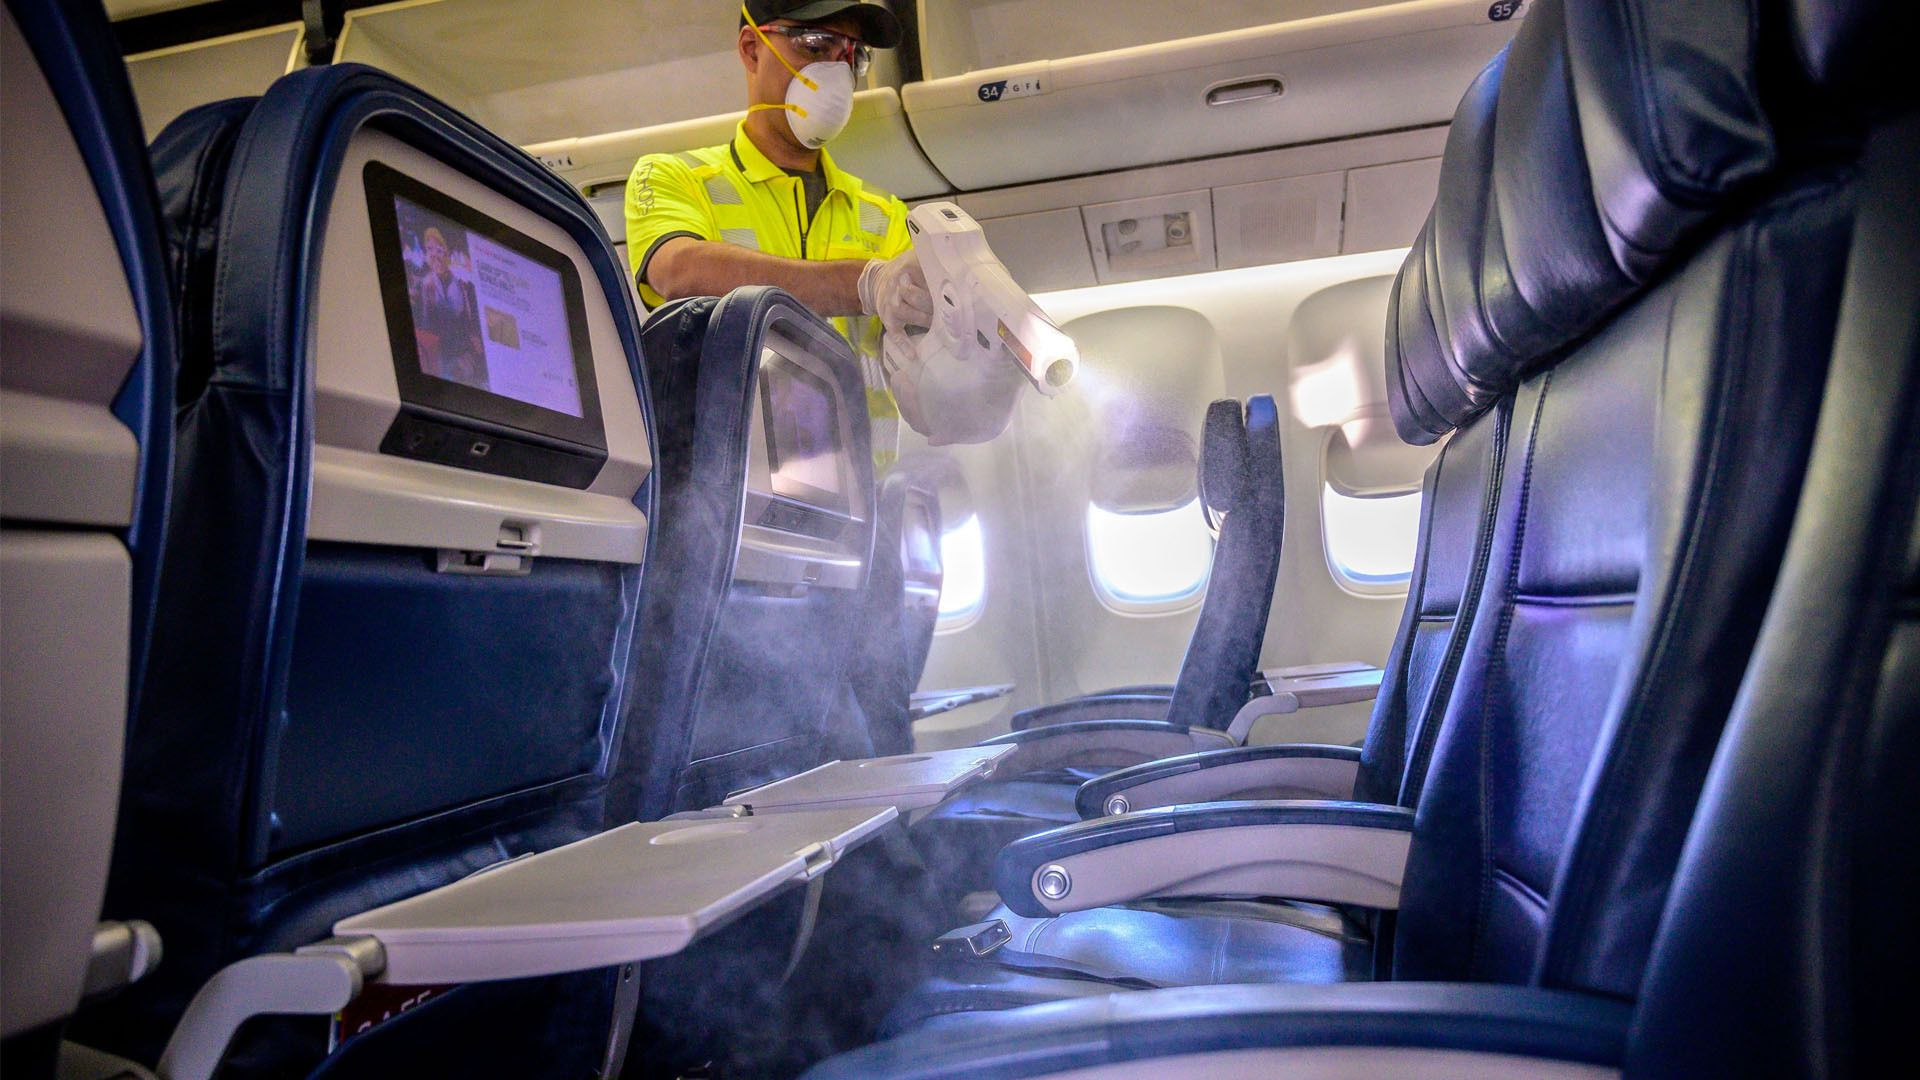 Image of Delta Air Lines worker spraying disinfectant on passenger seats.